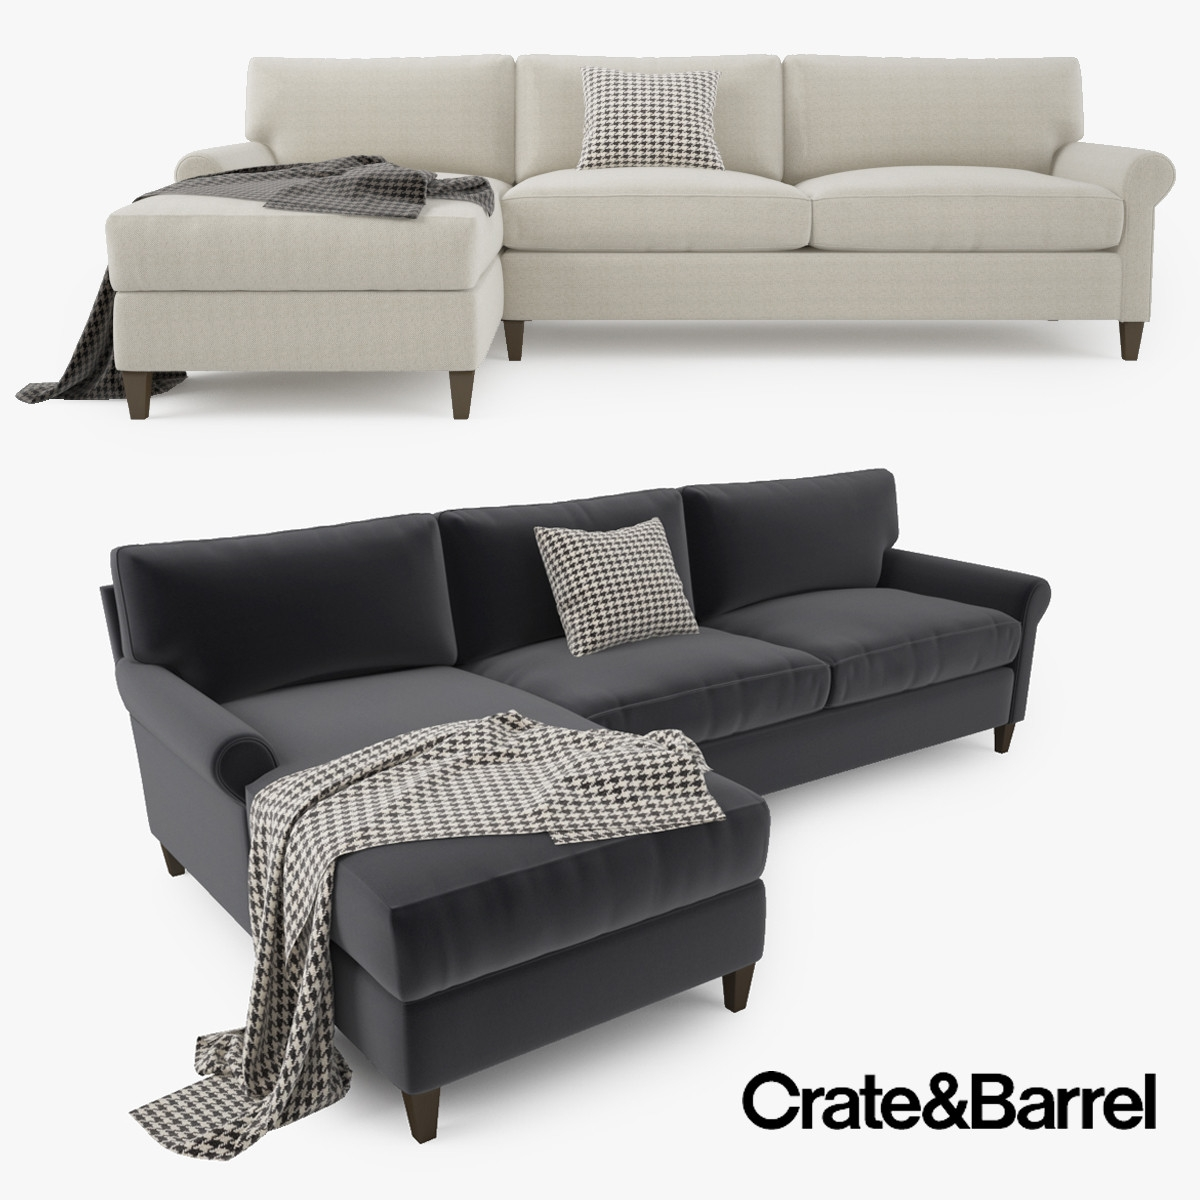 Crate Barrel Montclair 2 Model Within Crate And Barrel Sectional Sofas (Image 10 of 15)